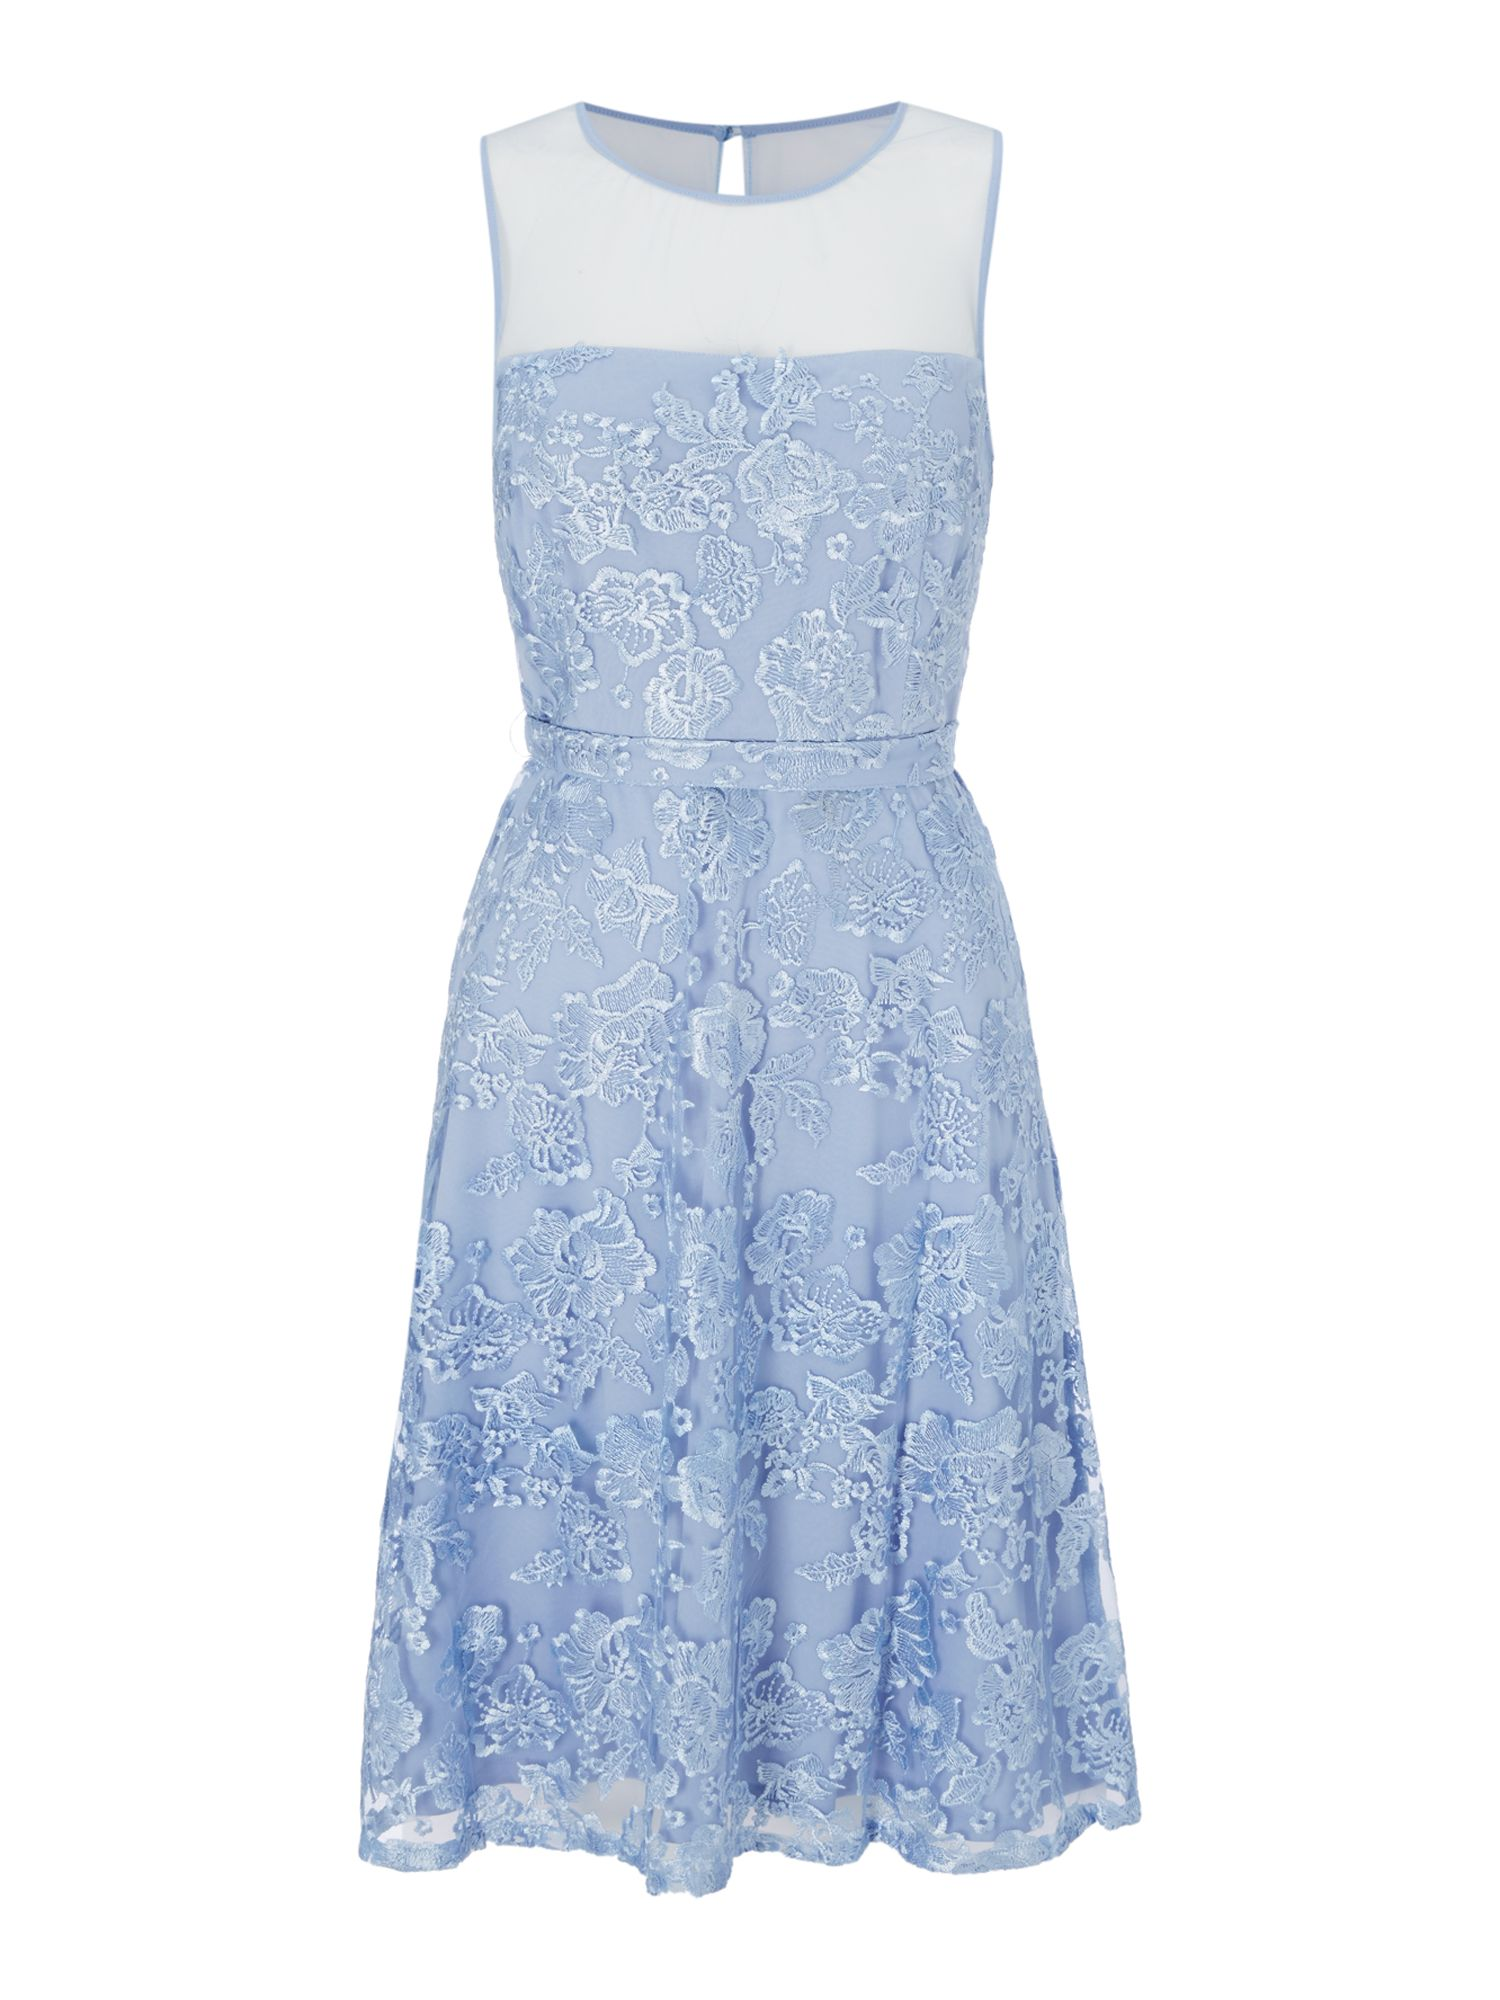 Shubette Shubette Floral lace fit and flare dress, Blue